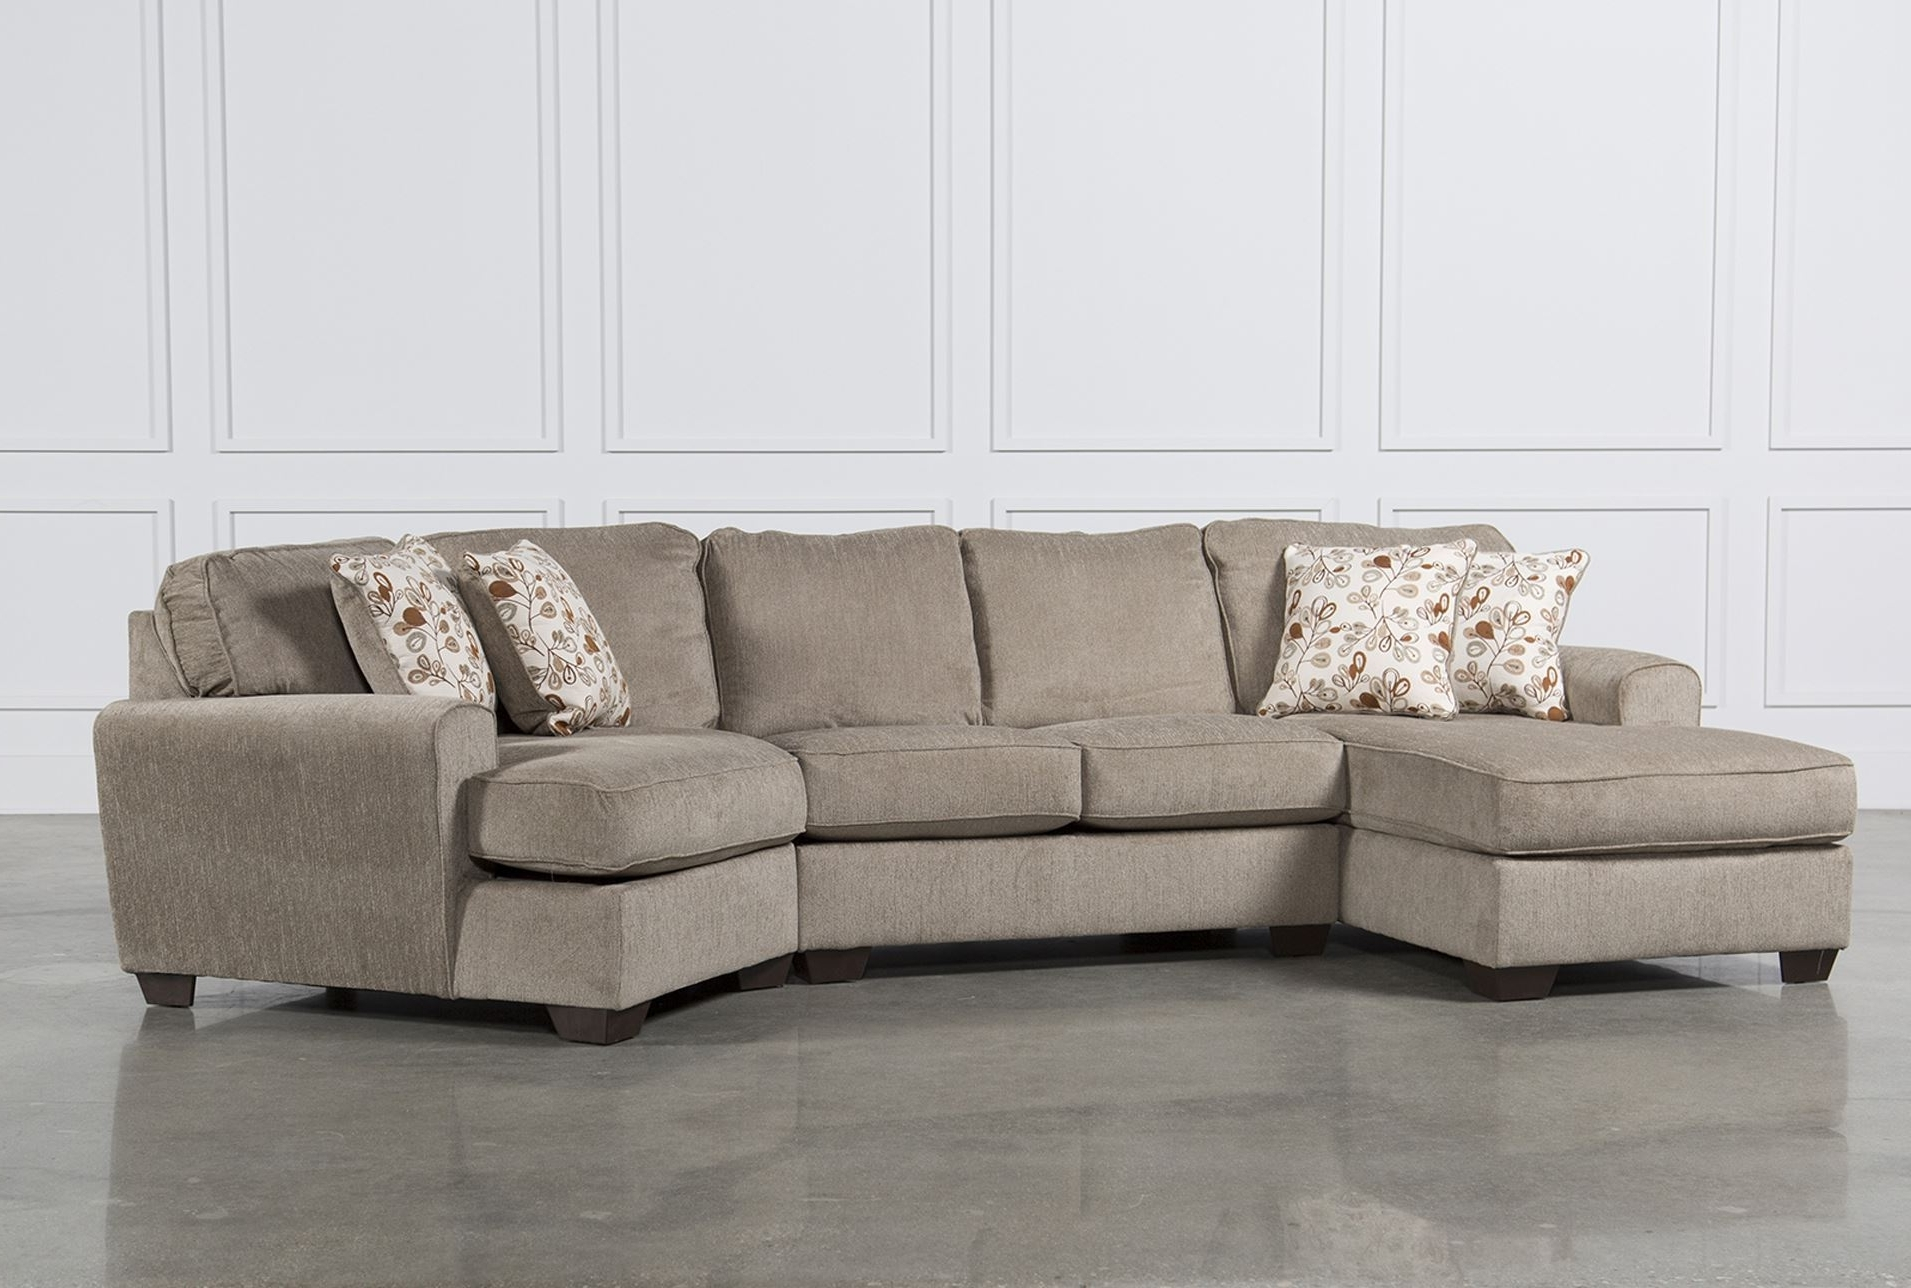 Chaise Sectionals With Regard To Trendy Incredible Sectional Sofas With Chaise And Cuddler Sofa Regard To (View 4 of 15)